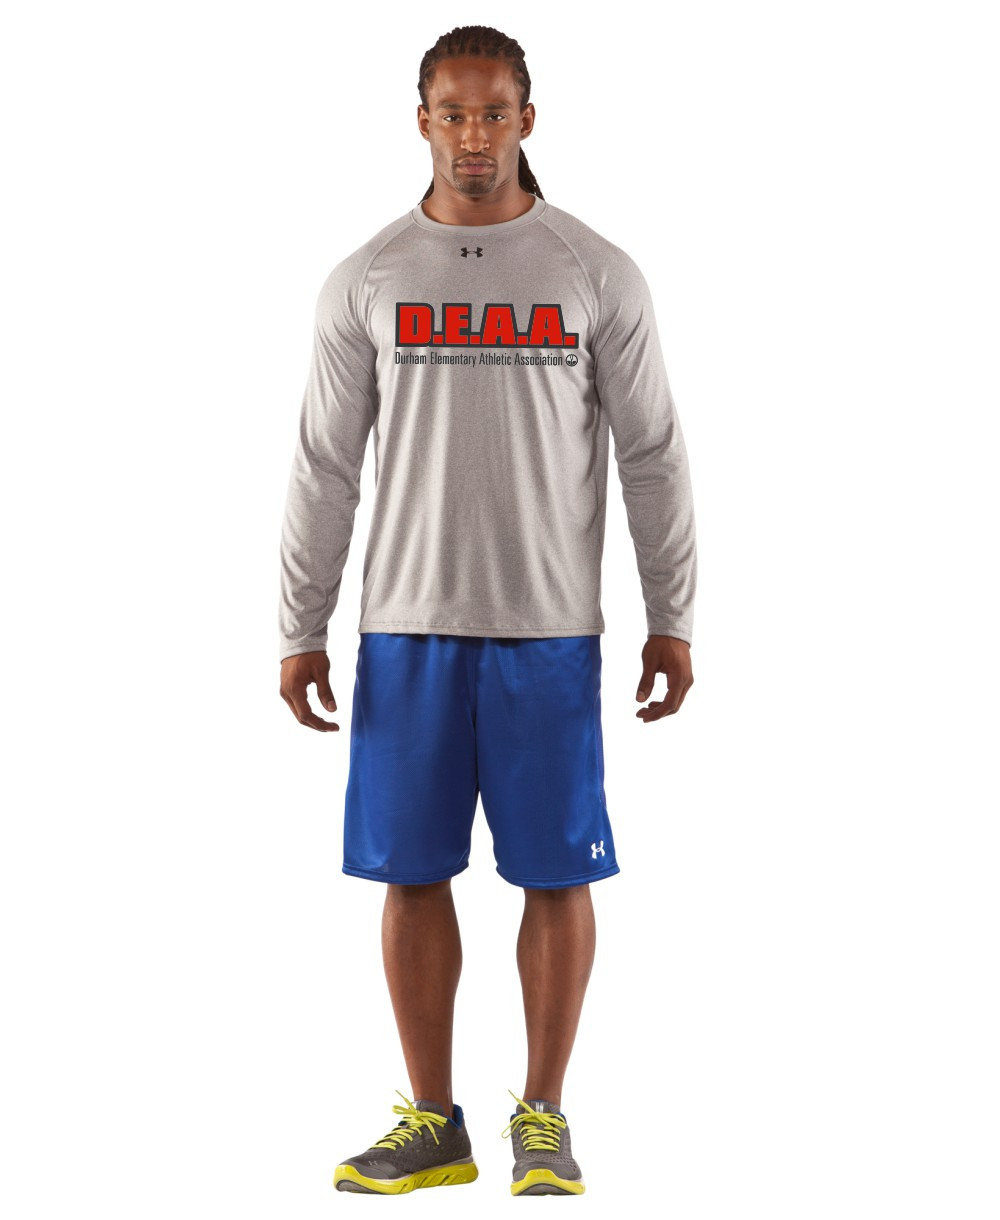 Deaa under armour men 39 s long sleeves locker t shirt grey for Men s ua locker long sleeve t shirt